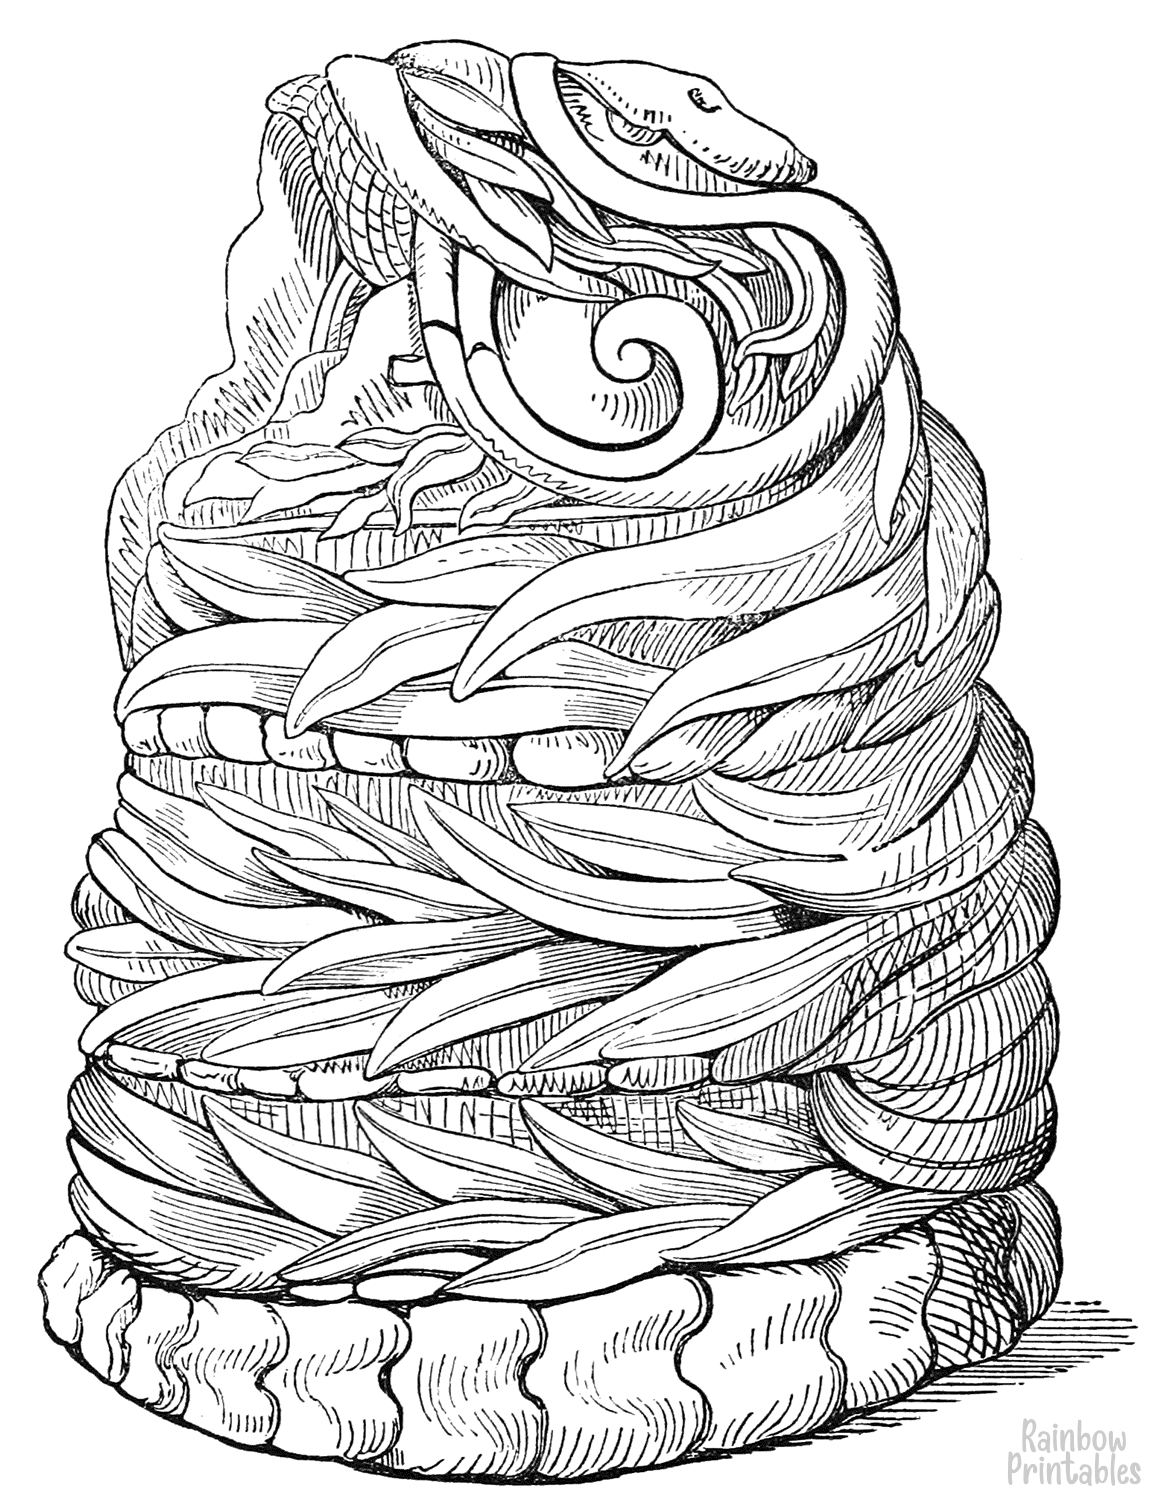 cartoon-line-art-world-cultures-serpent-in-basket-coloring-page-for-kids